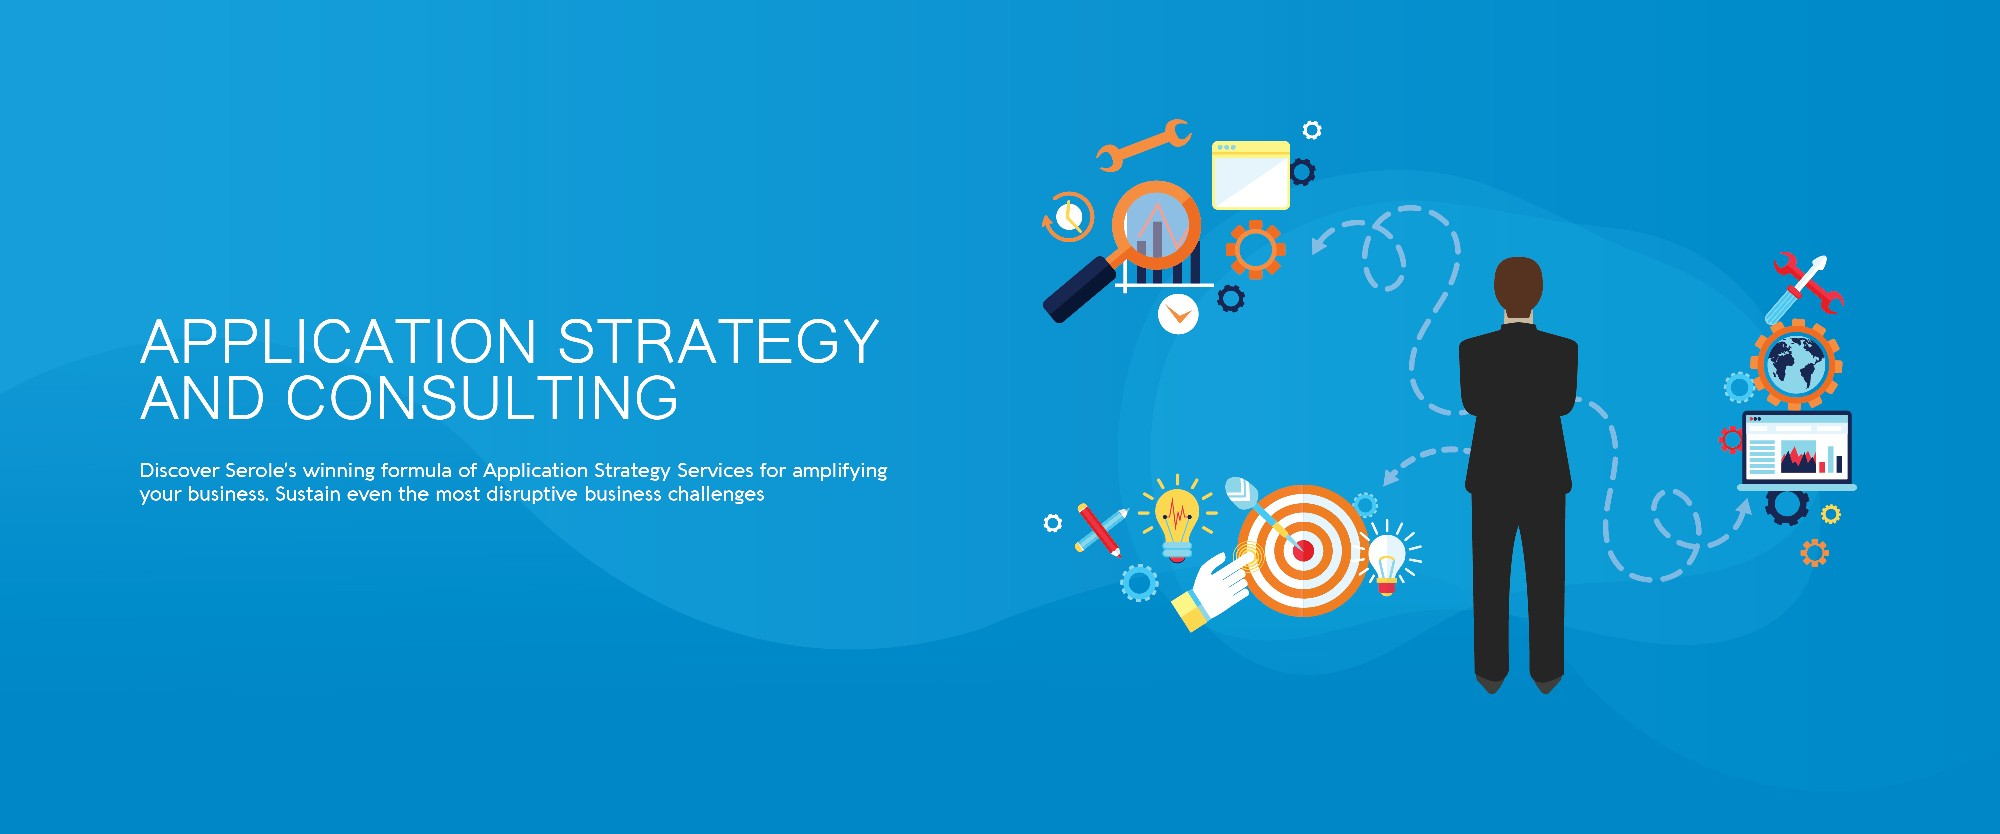 4.Application Strategy and Consulting-01